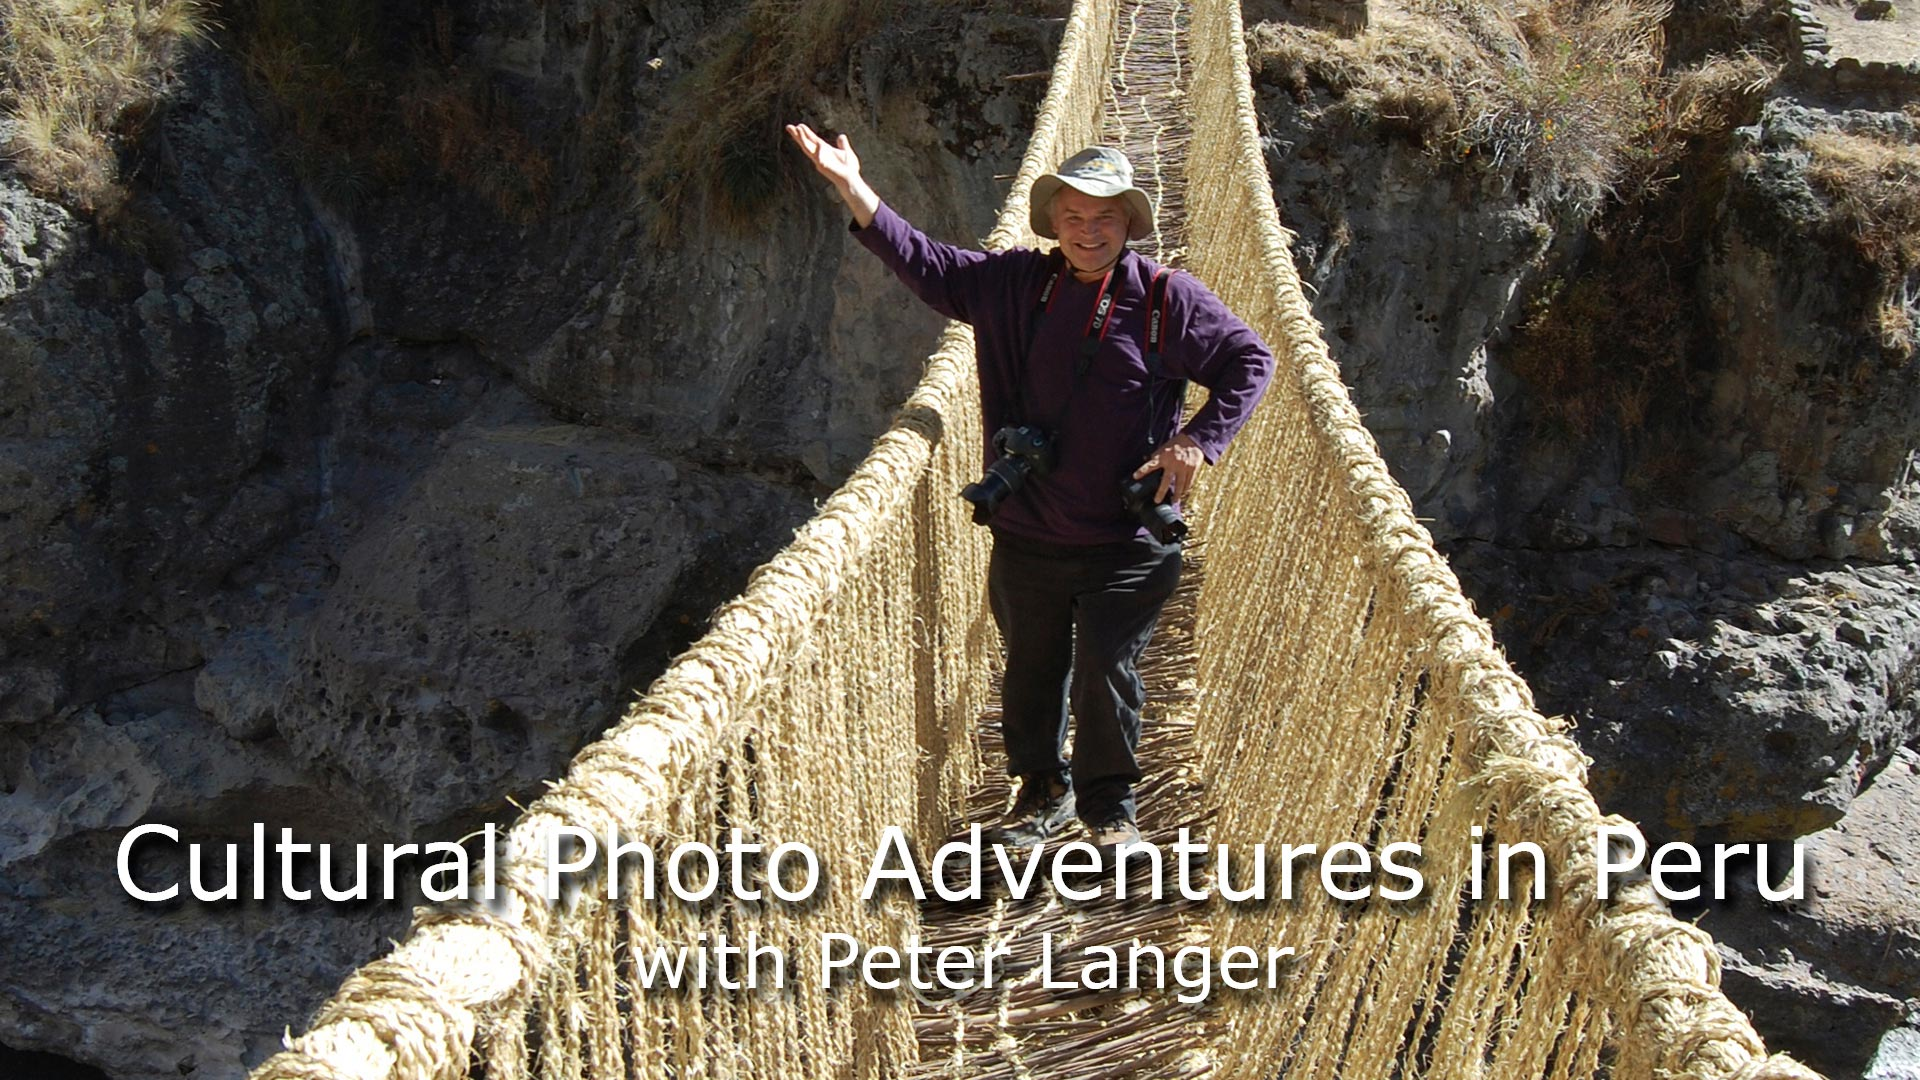 Cultural Photo Adventures in Peru with Peter Langer